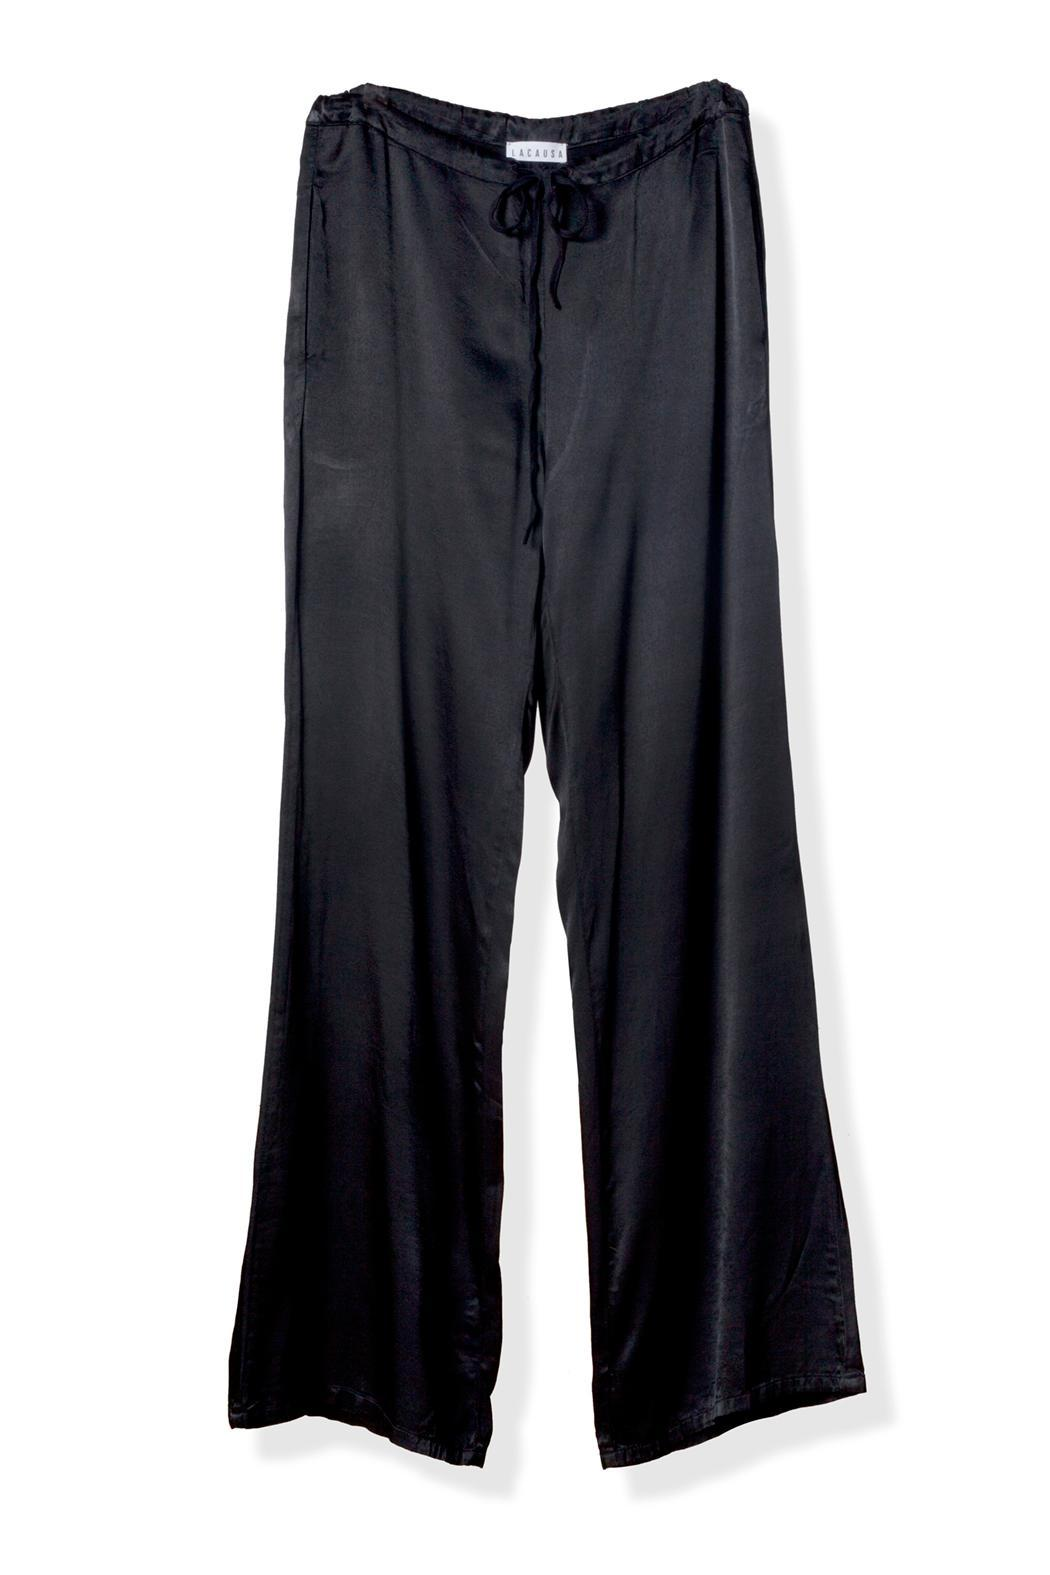 LACAUSA Satin Tie Pants - Front Cropped Image